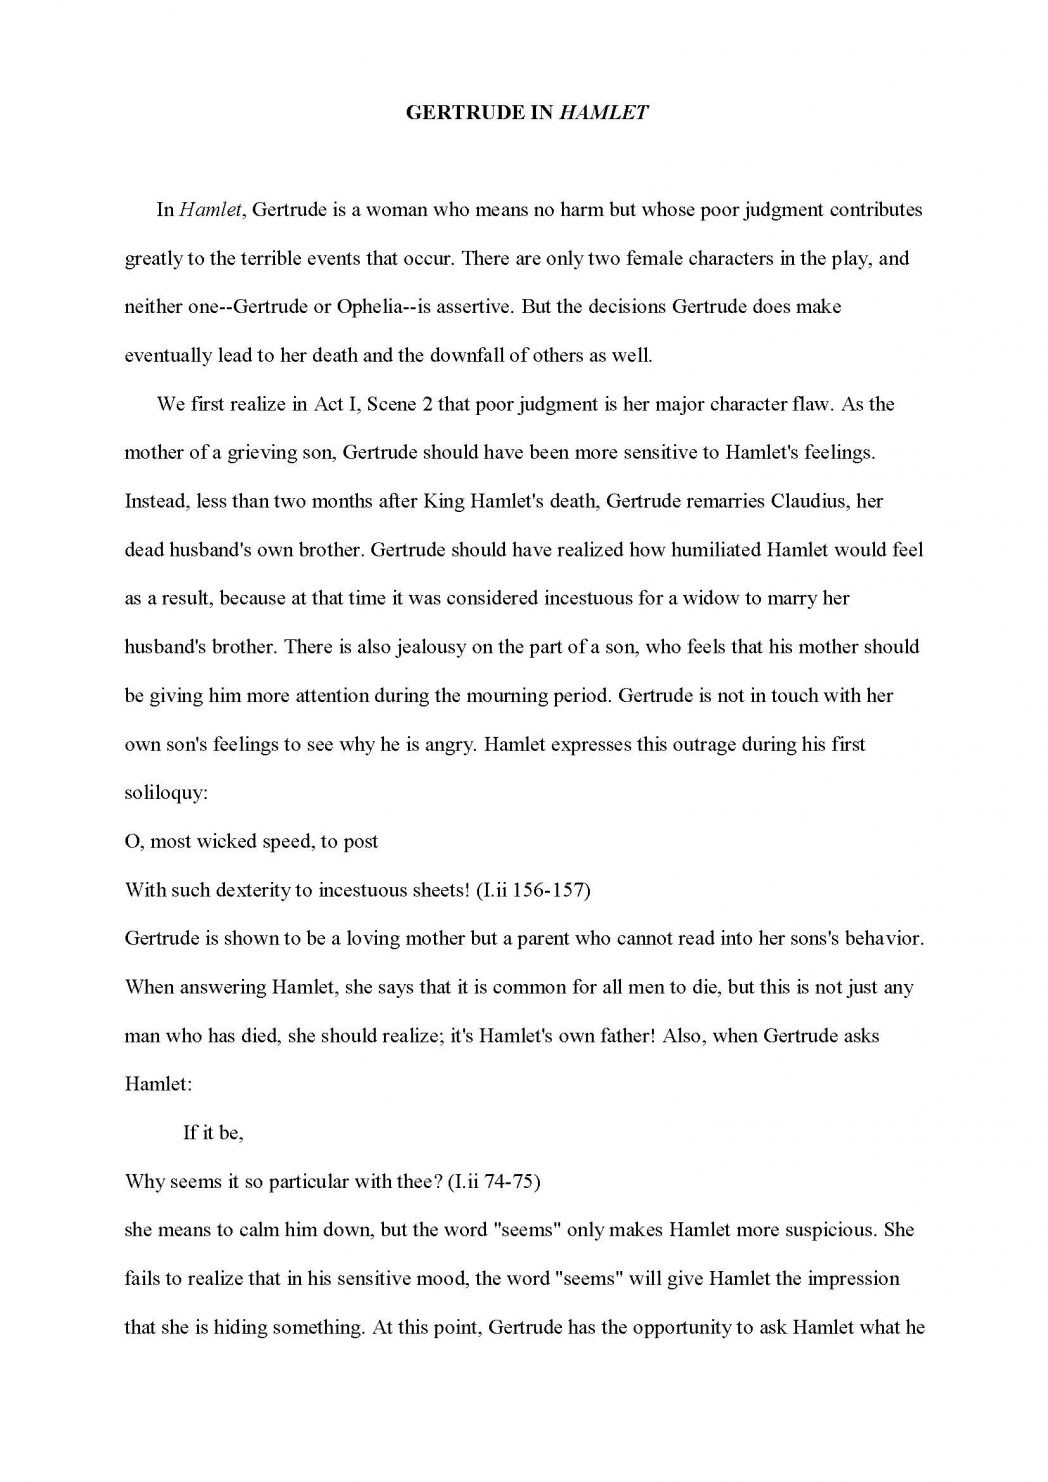 005 Profile Essays Examples Character Analysis Sample Essay Formal Characterization Paper Ex Example Characters Comparing 1048x1482 How To Write An Astounding On A Research Full